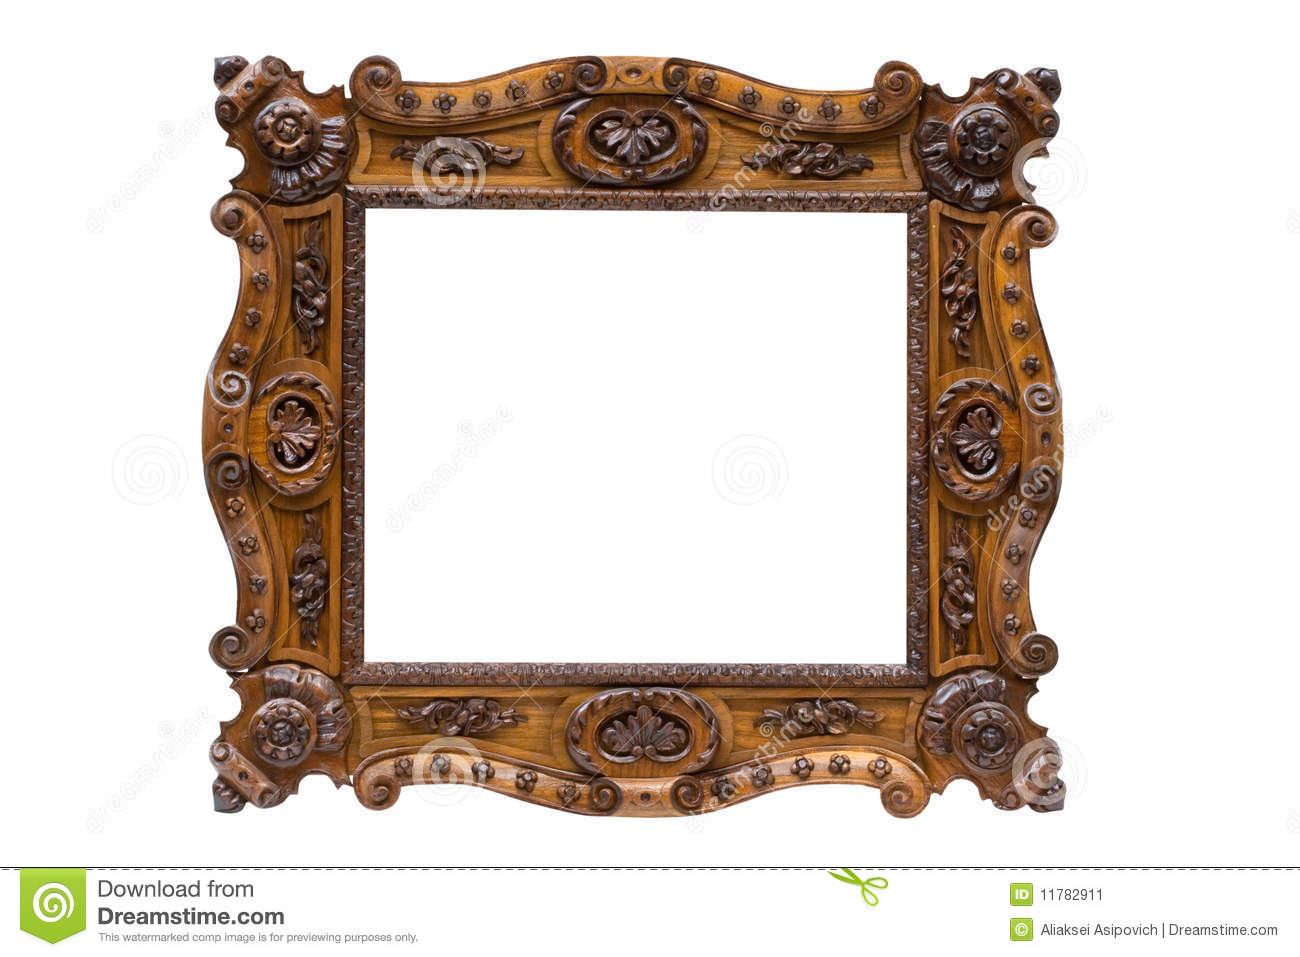 Vintage Wood Frame : Antique wooden frame, isolated on white background.